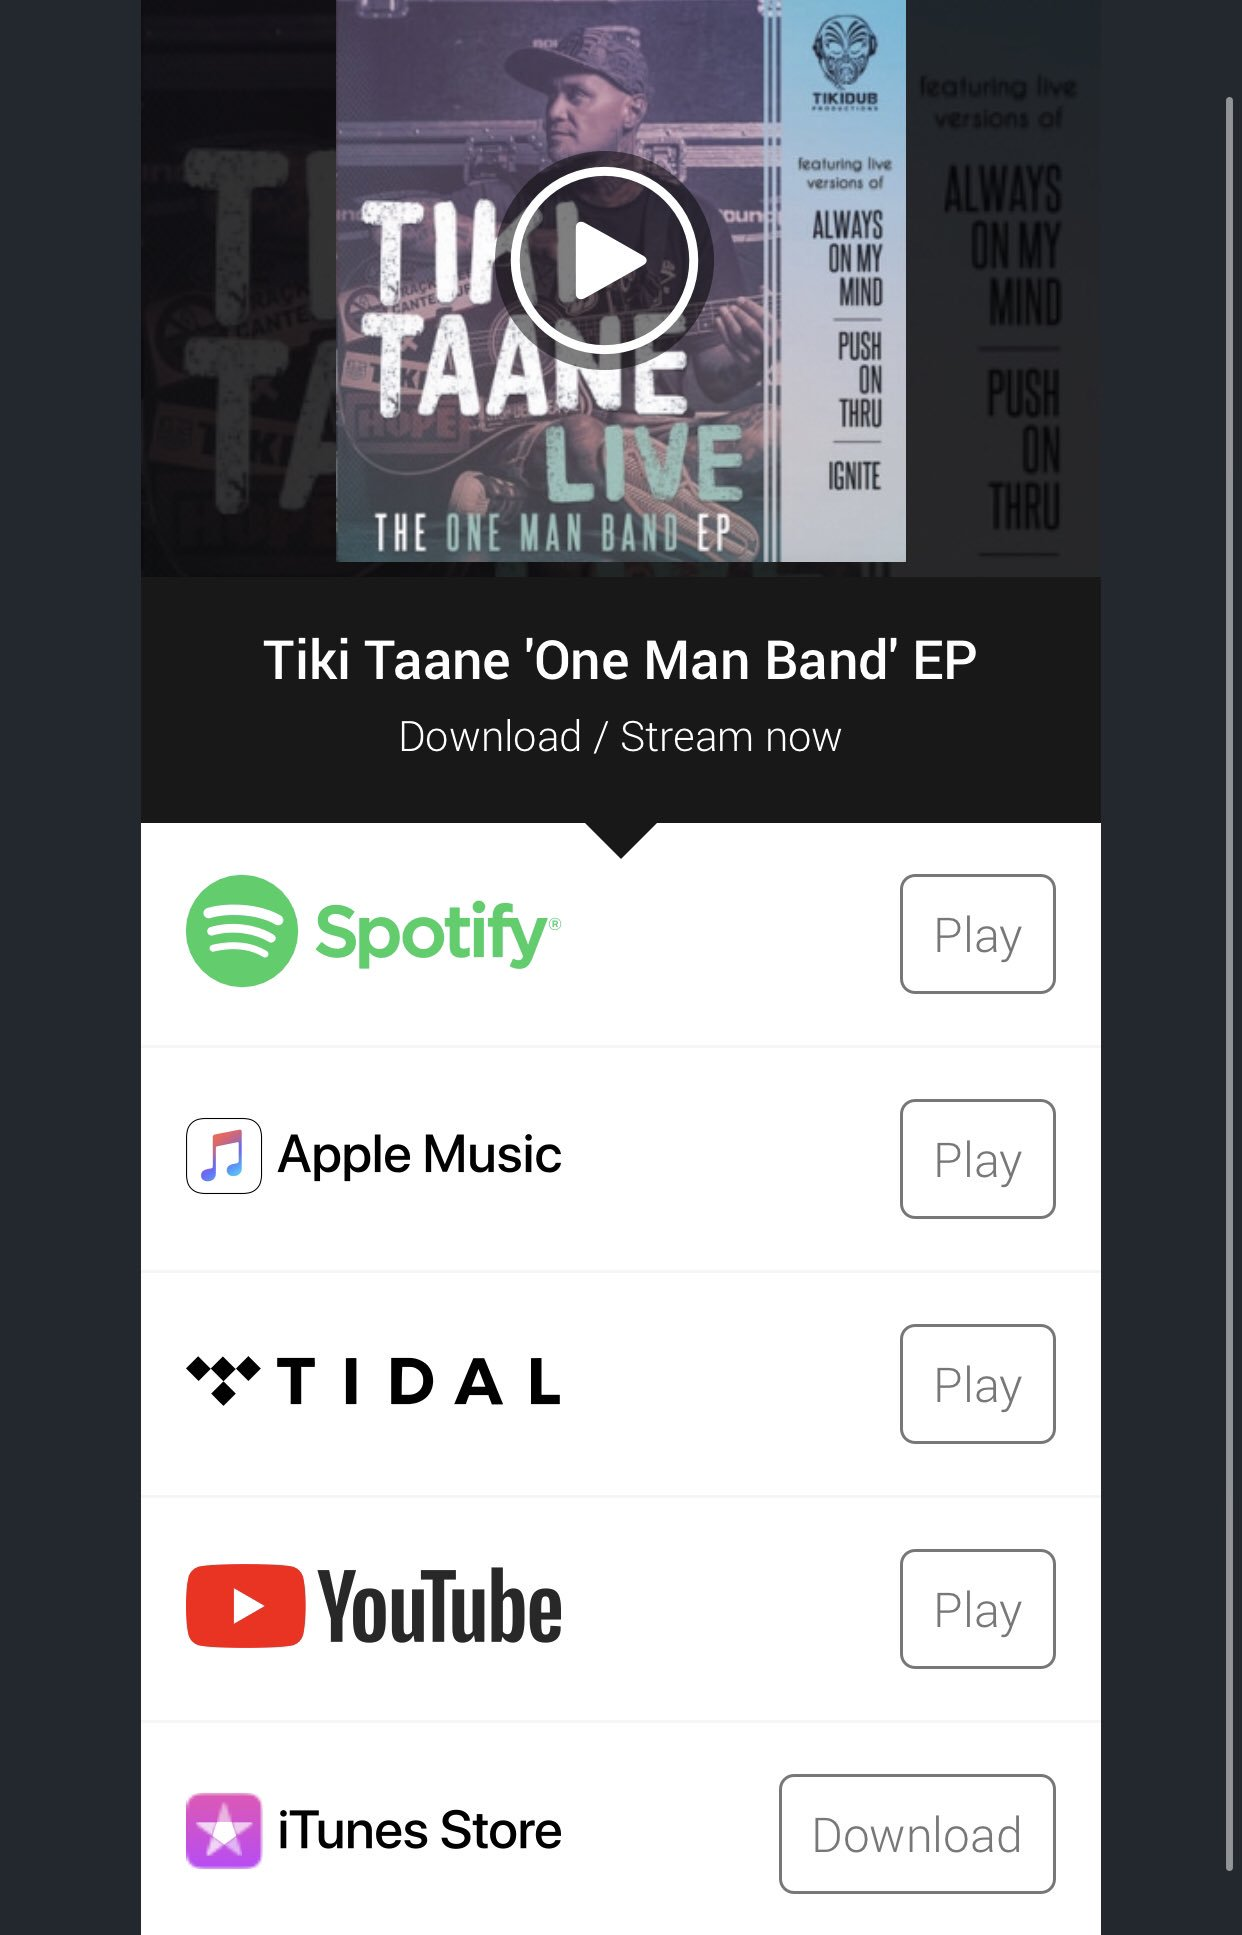 stream-download-my-new-live-one-man-band-ep-now-from-https-t-co-we4wiq6sp5-tikitaane-livelooping-looping-https-t-co-u8agubni2g